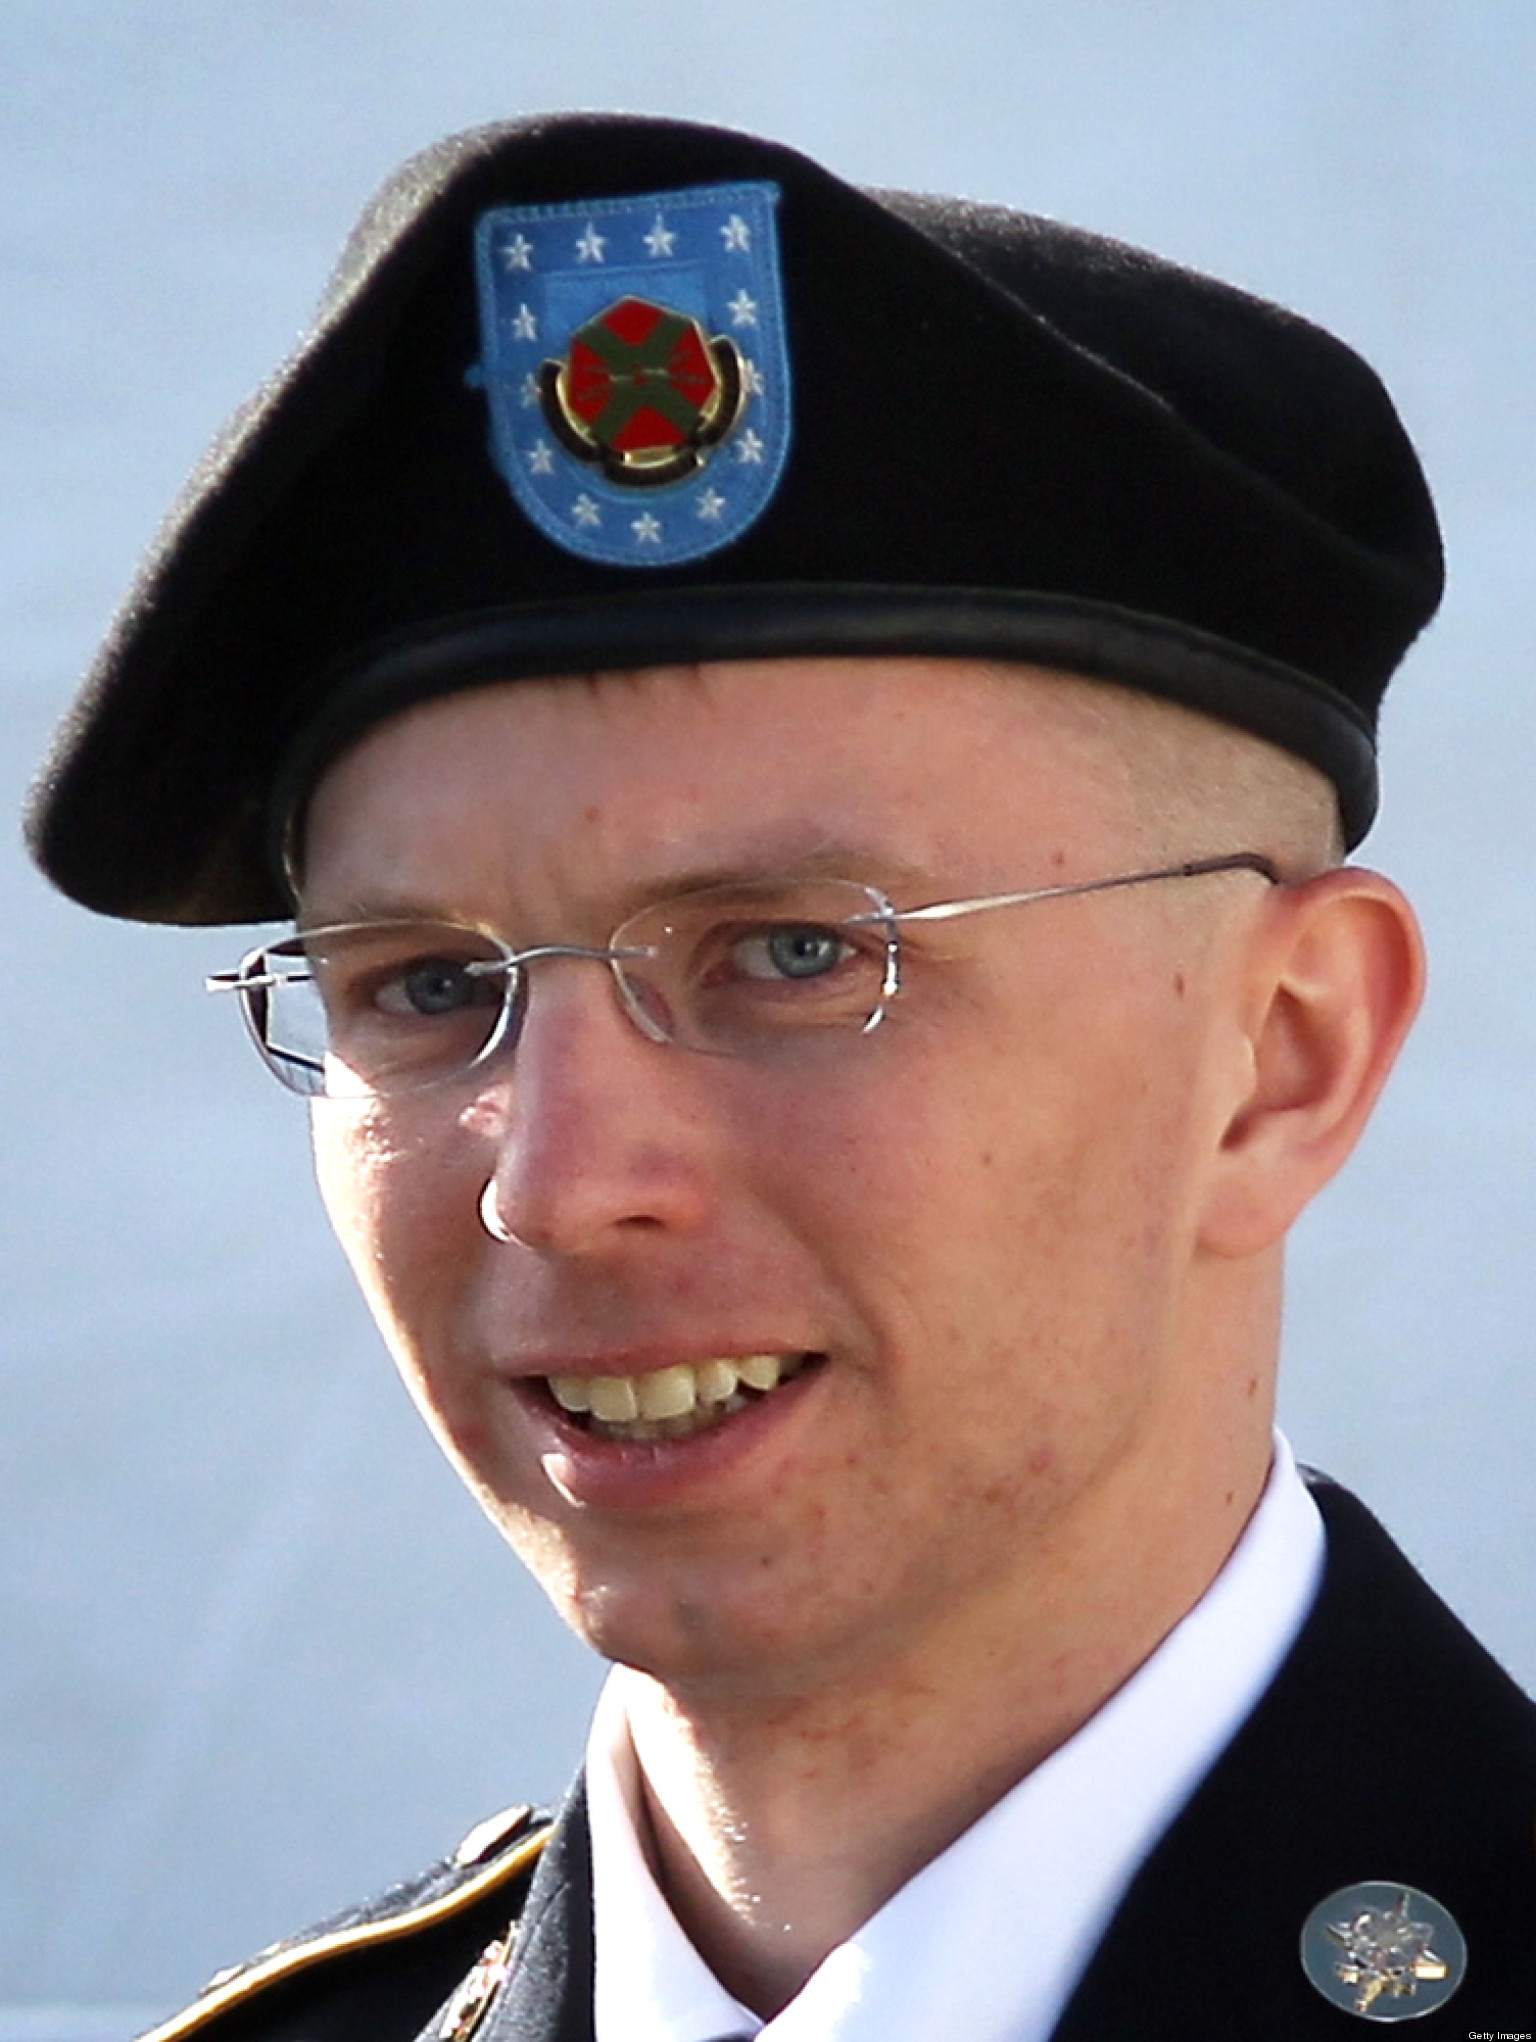 bradley manning Bradley manning plans to live as a woman named chelsea and wants to begin hormone therapy as soon as possible, the soldier said thursday, a day after being sentenced to 35 years in prison for .